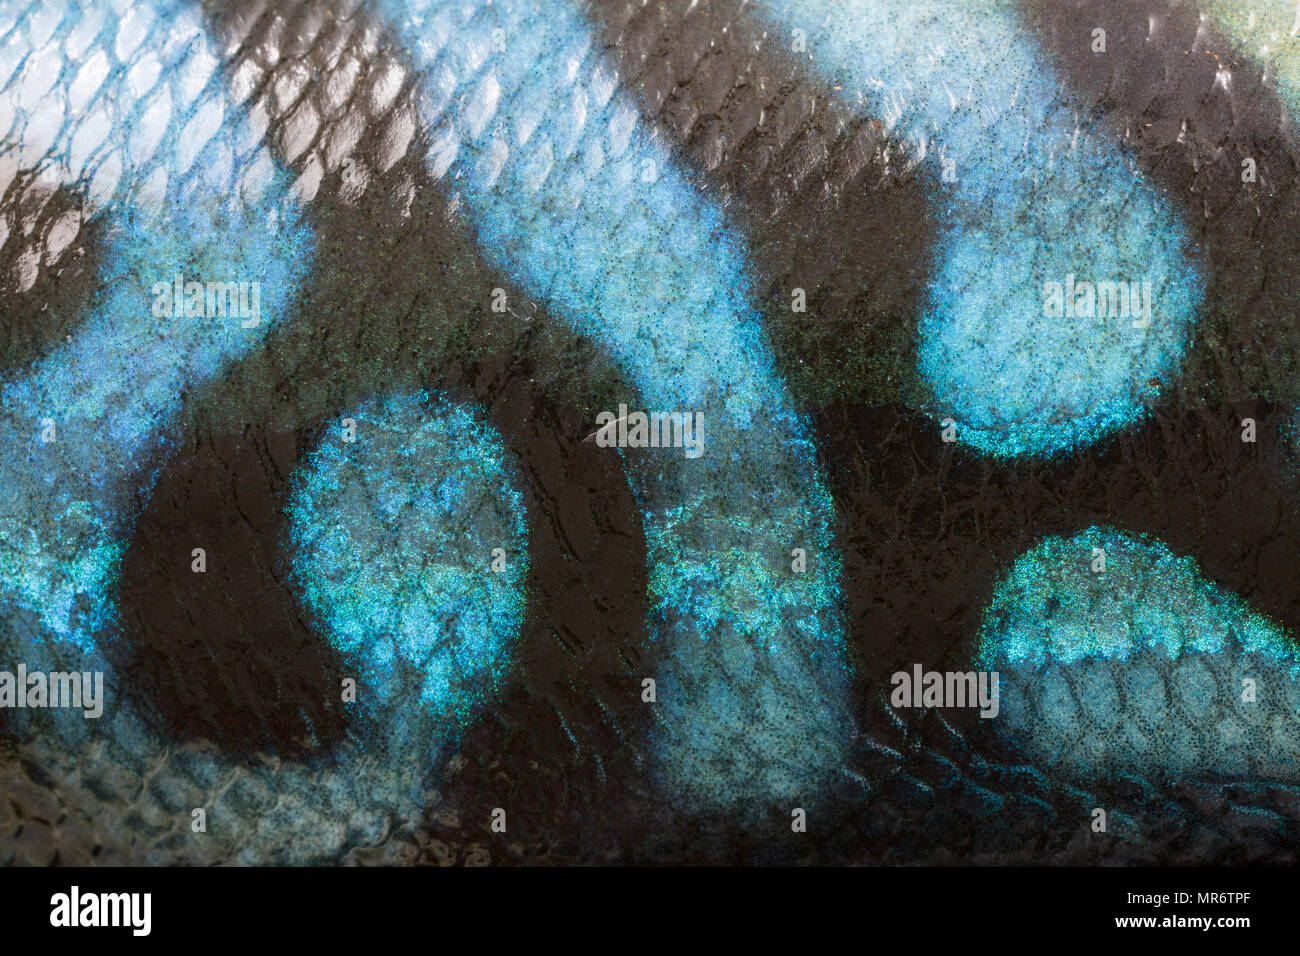 Close up picture of the skin of a mackerel caught shore fishing from Chesil beach in Dorset England UK GB showing the colours and patterning on its sk - Stock Image